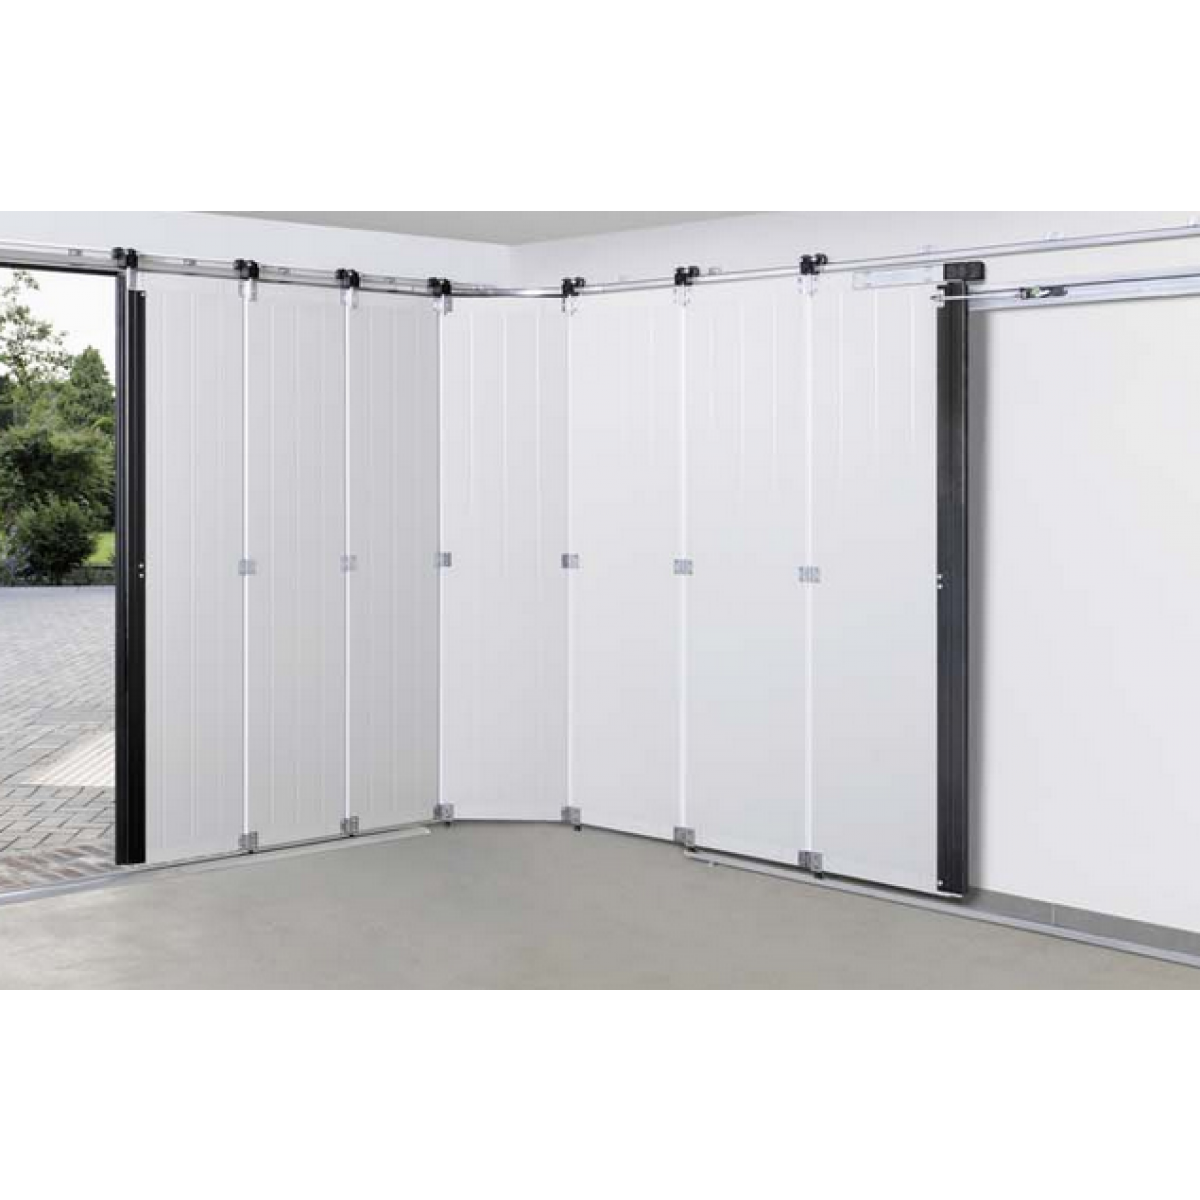 Porte lat rale de garage hst hormann portes de parking - Hormann porte garage ...